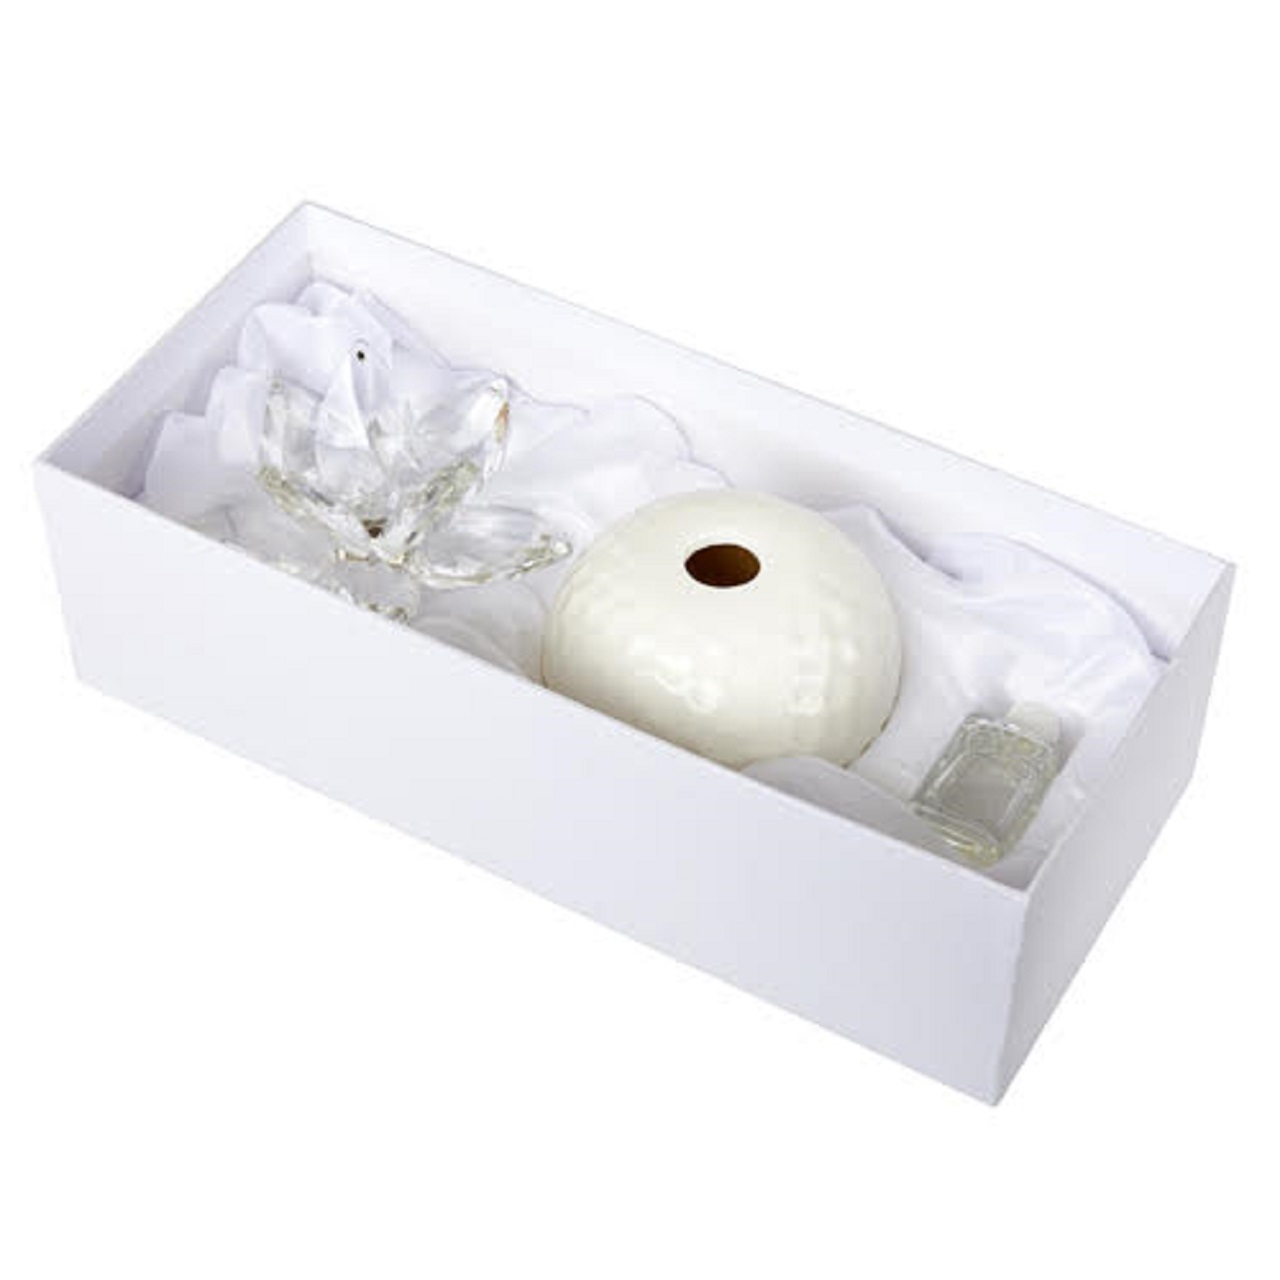 box_of_white_hammered_aroma_diffuser_33131w__37678.1505329888.jpg